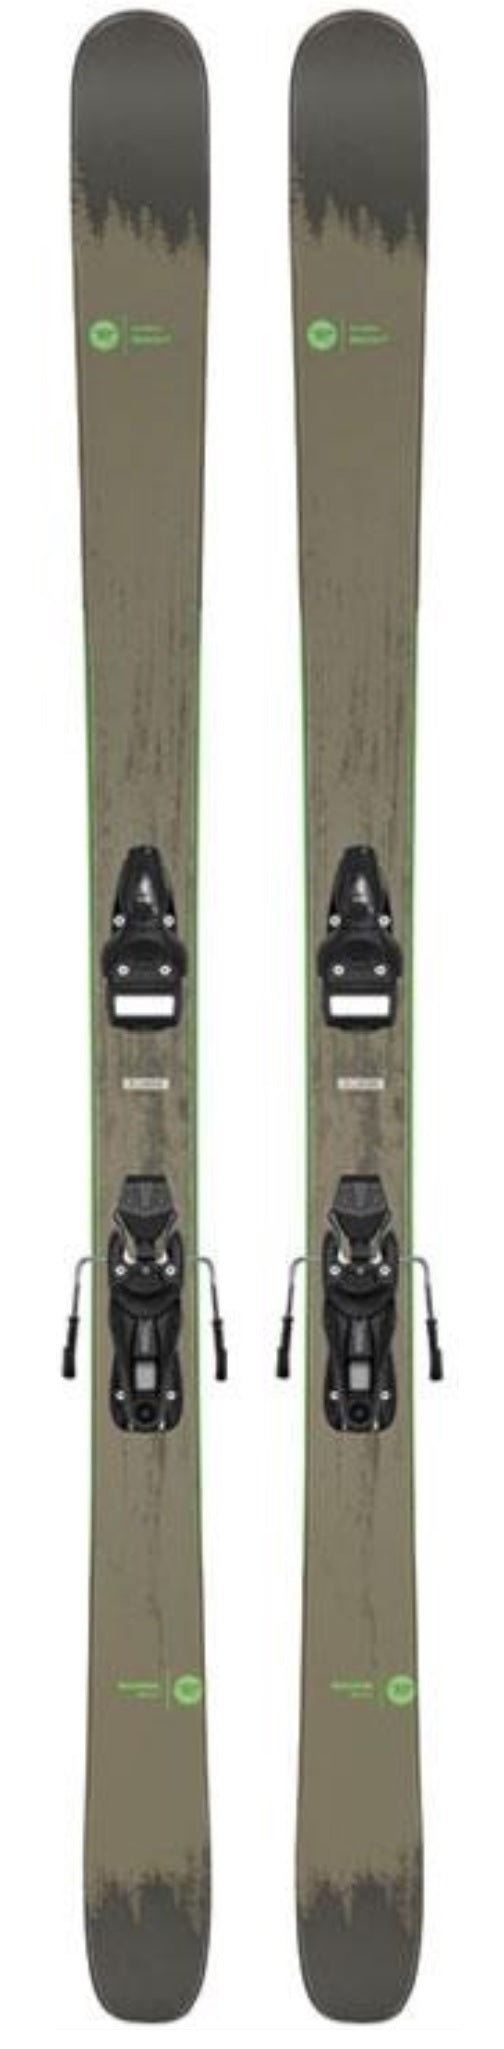 ROSSIGNOL 2020 Rossignol Smash 7 snow skis with bindings - ProSkiGuy